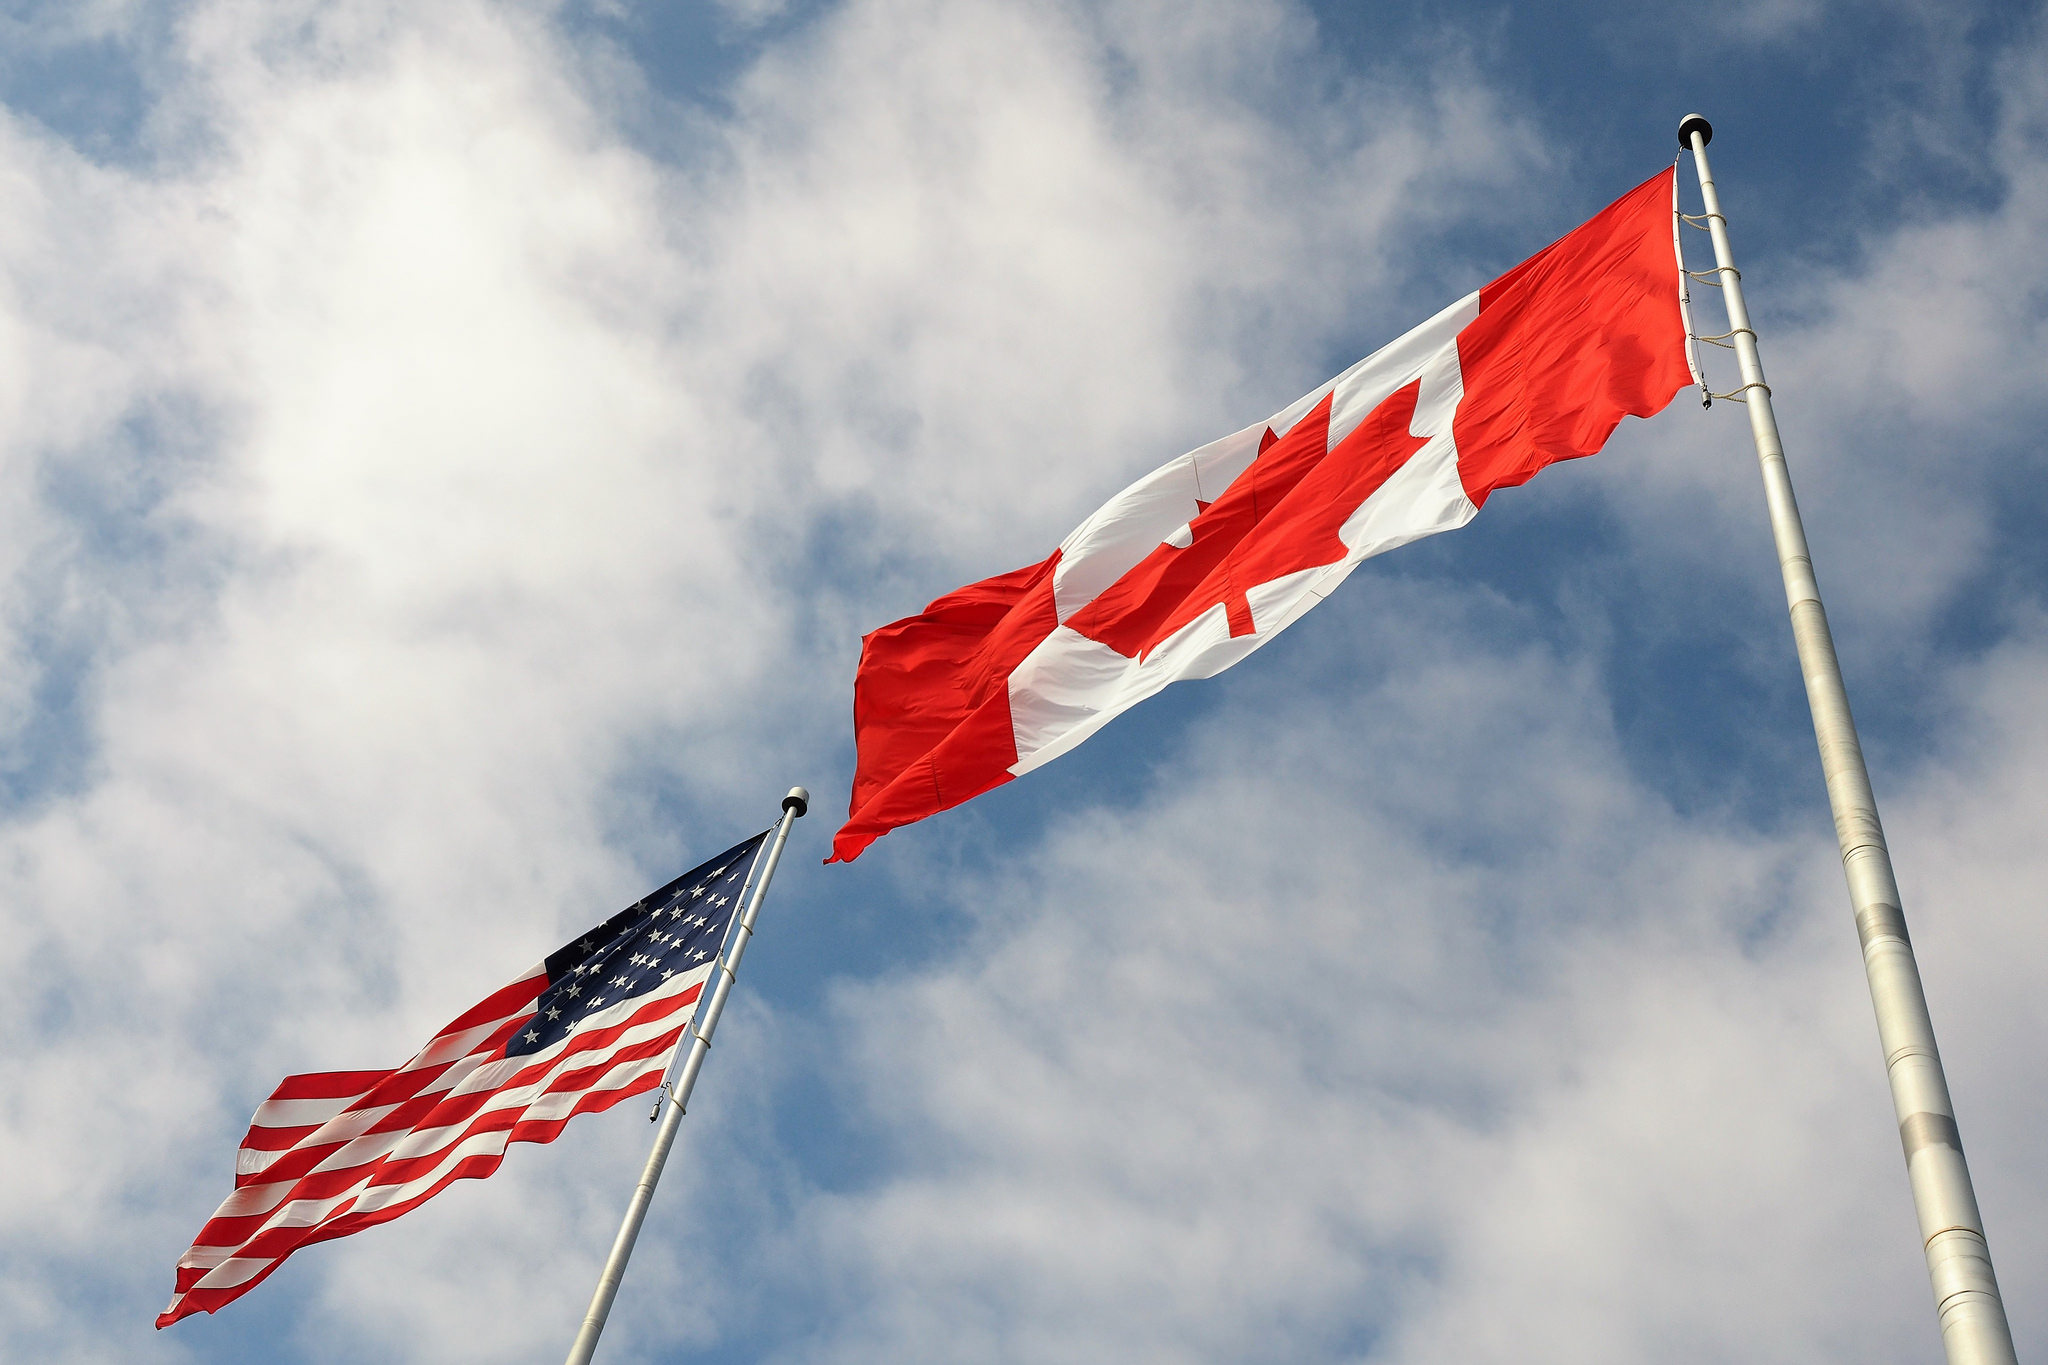 The Canada-United States Relationship, According to a Florida Judge